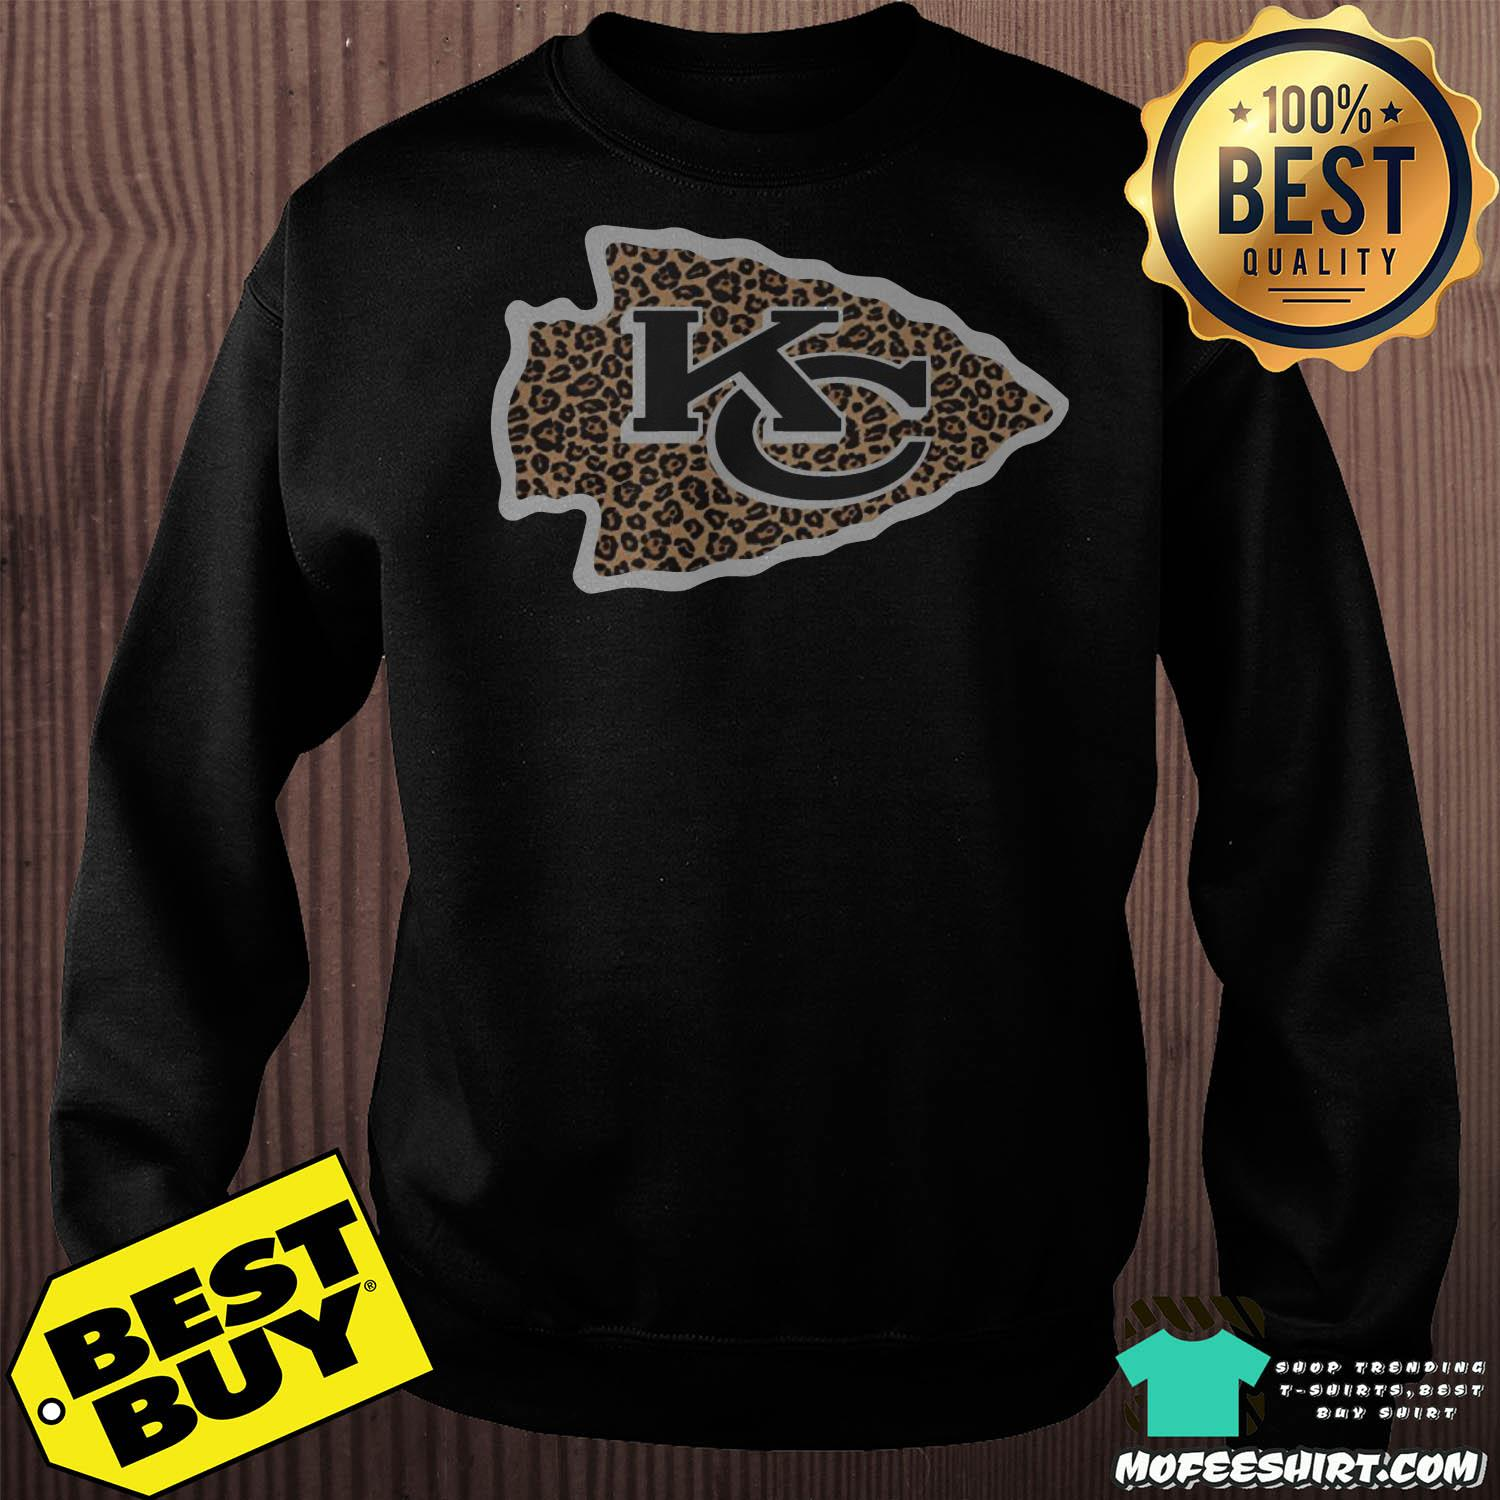 old glory kansas city chiefs sweatshirt - Old Glory Kansas City Chiefs Shirt